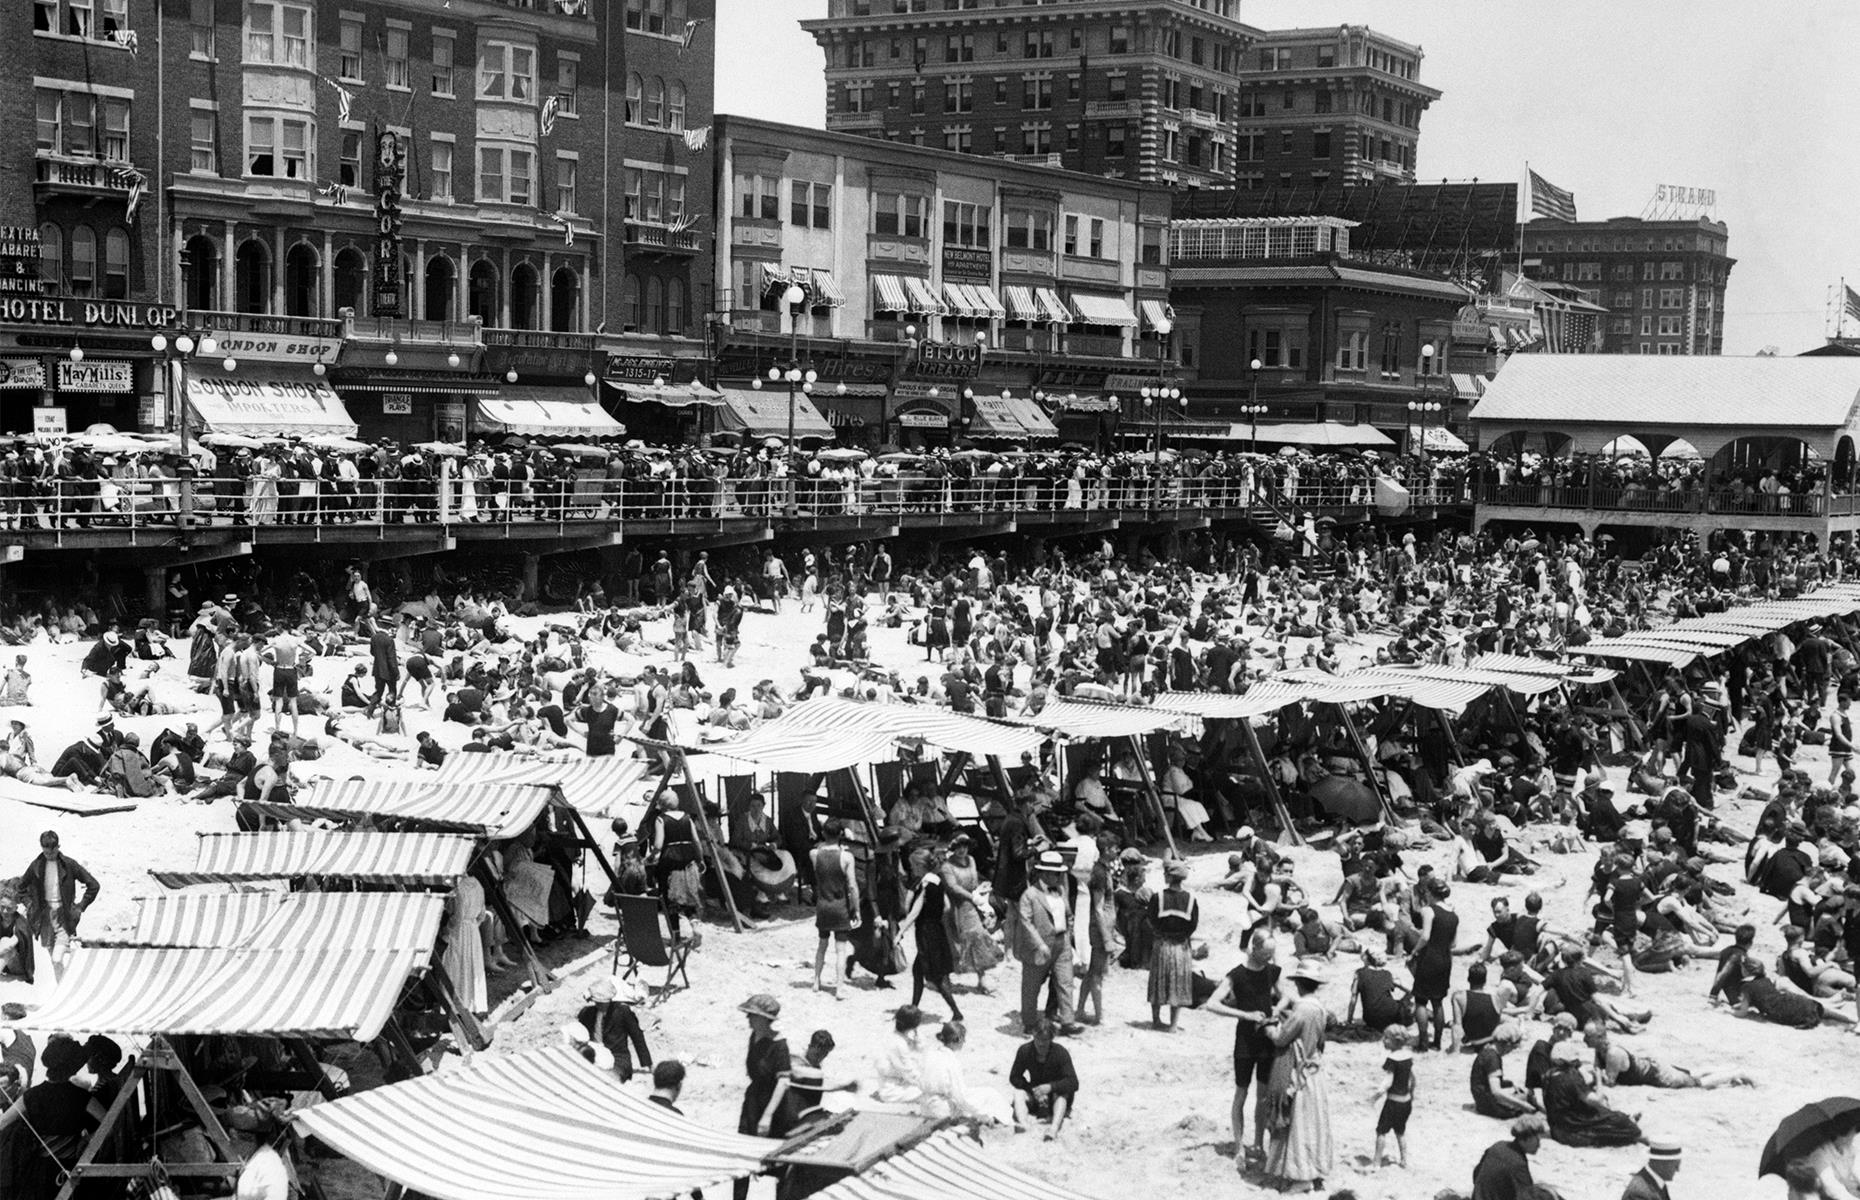 Slide 4 of 47: The beach was – and is – as much of a draw as the boardwalk, especially during sticky summers. Here, in the Roaring Twenties, sun-seekers bask on the sand or cool off beneath striped shelters, as the famed boardwalk bustles in the background.